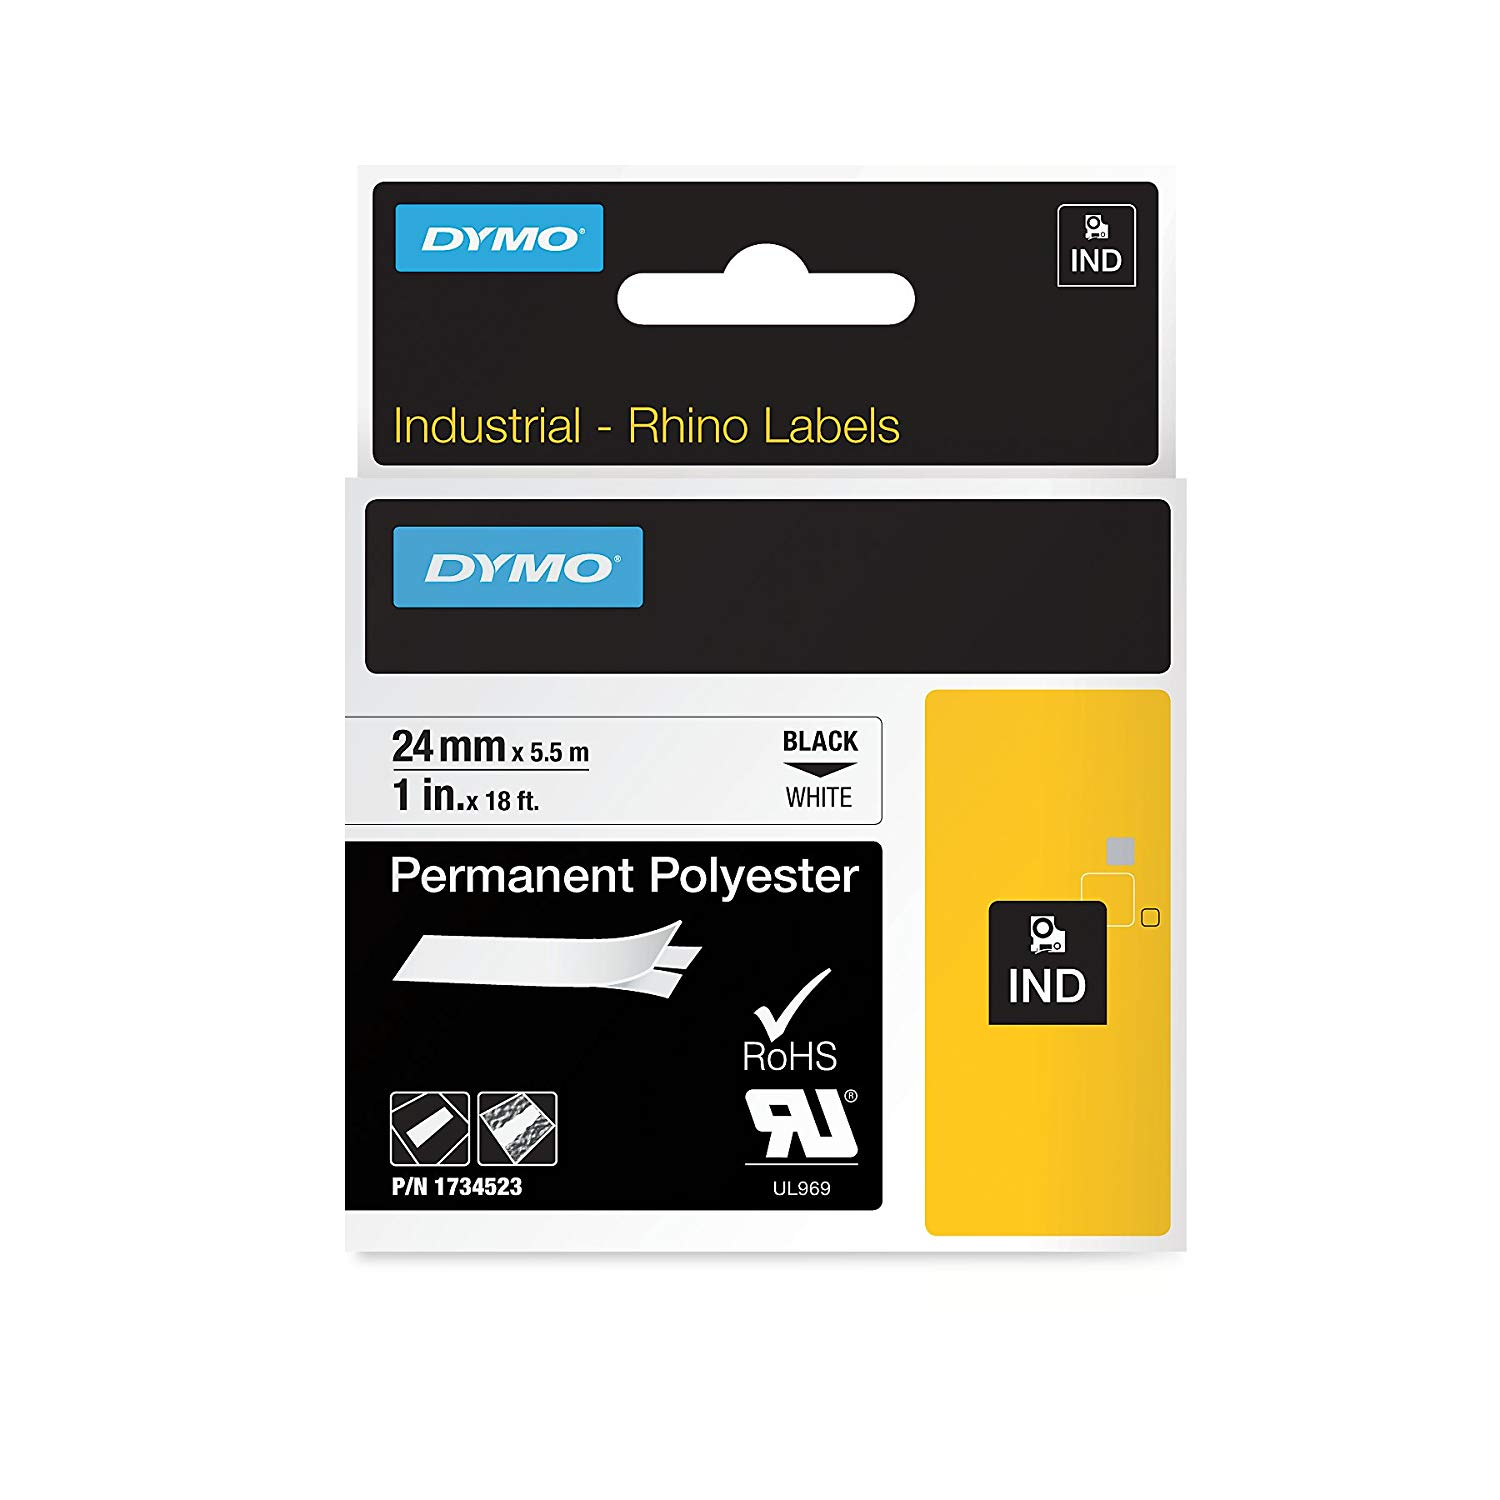 Dymo Rhino S0773830 (1734523) Permanent Polyester Tape 24mm x 5.5m - Black on White (pc)